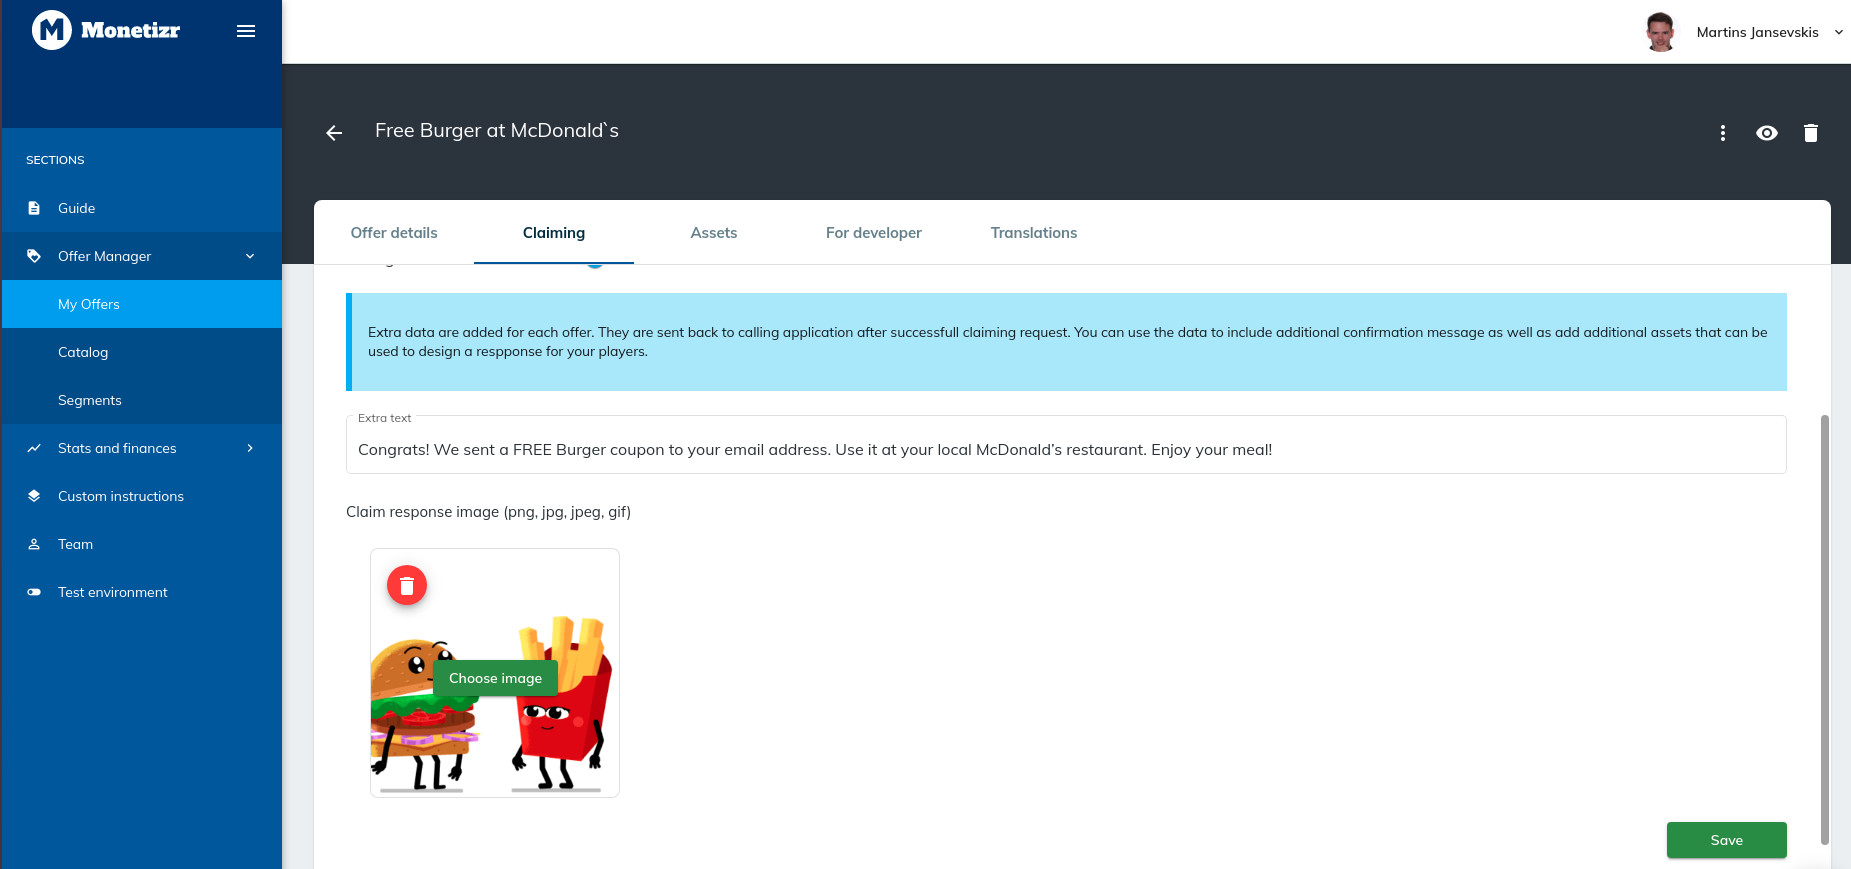 Claim data can be added to the console. The data will be returned in a successful giveaway offers claiming request ([See more](https://docs.themonetizr.com/docs/brand-sponsored-rewards))